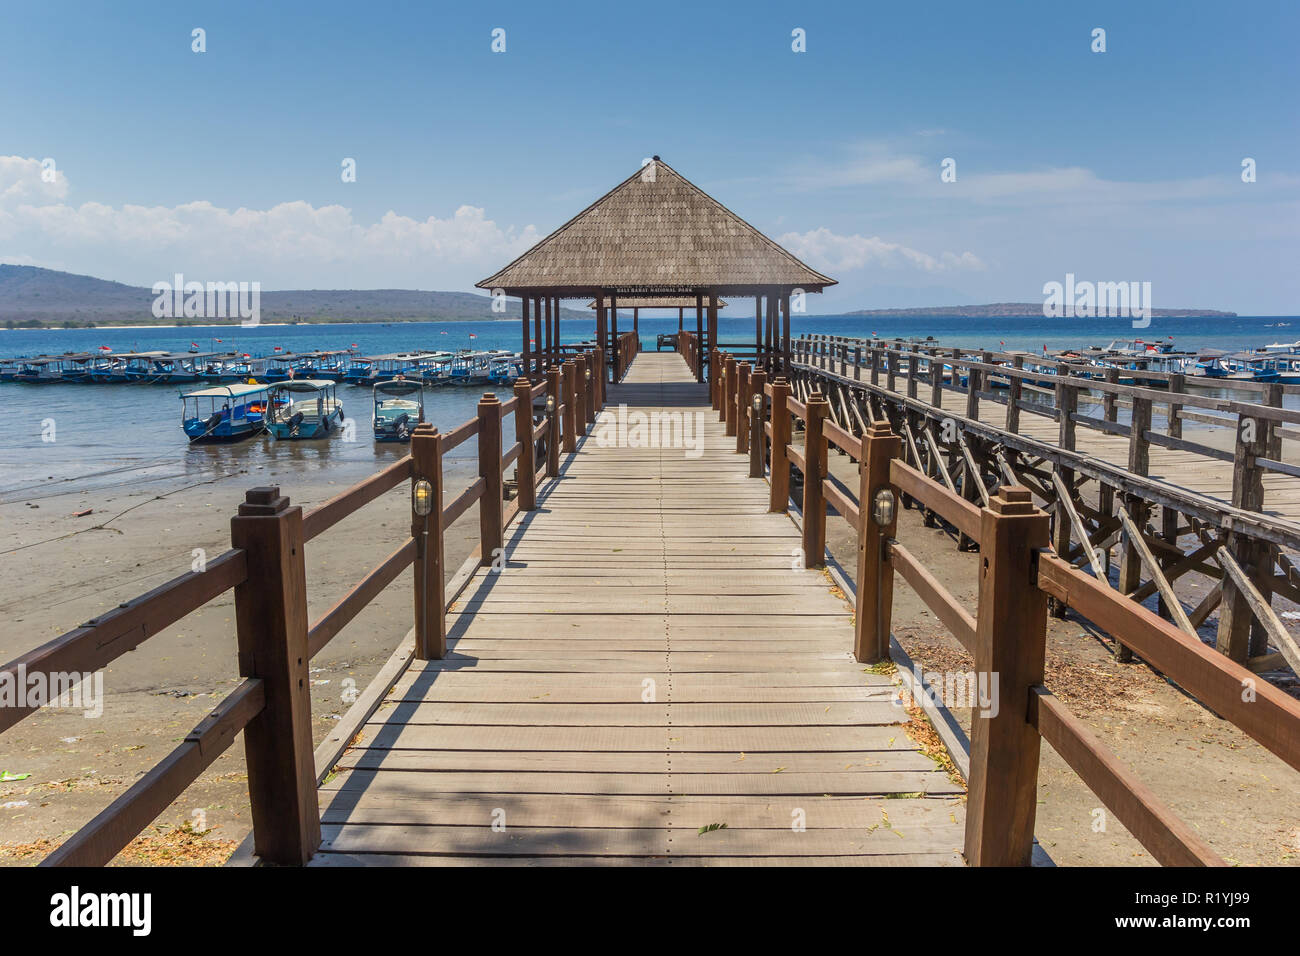 Wooden jetty at the Bali Barat National Park, Indonesia - Stock Image